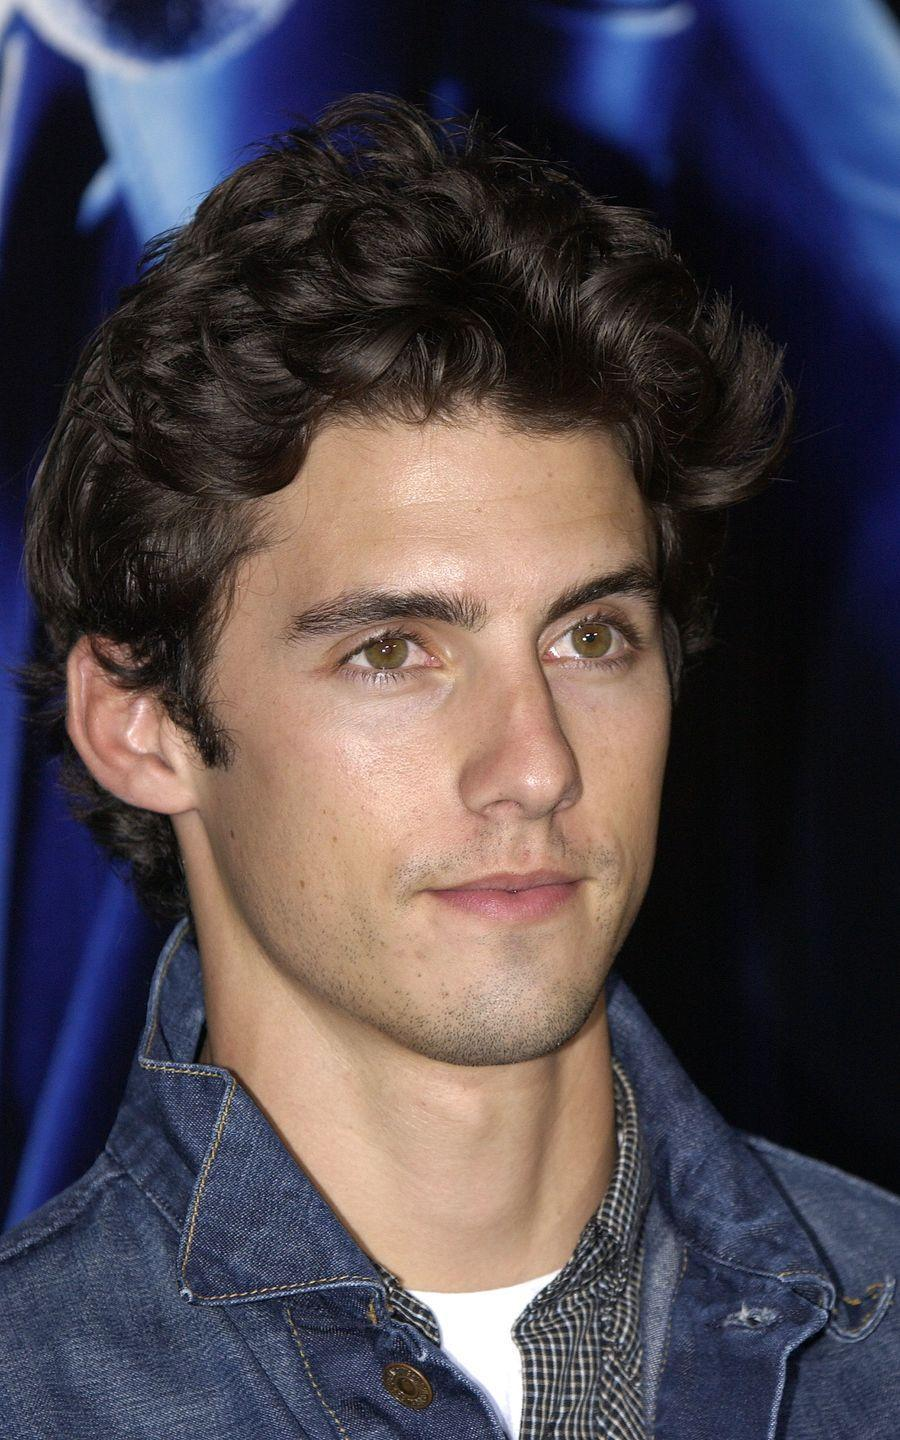 <p>Milo Ventimiglia rose through the ranks as a TV actor in the mid-90s, appearing in <em>Sabrina The Teenage Witch </em>and <em>Saved By The Bell. </em>In season two of <em>Gilmore Girls, </em>he joined the cast as Jess Mariano, a love interest for Rory and the nephew of Luke. </p>